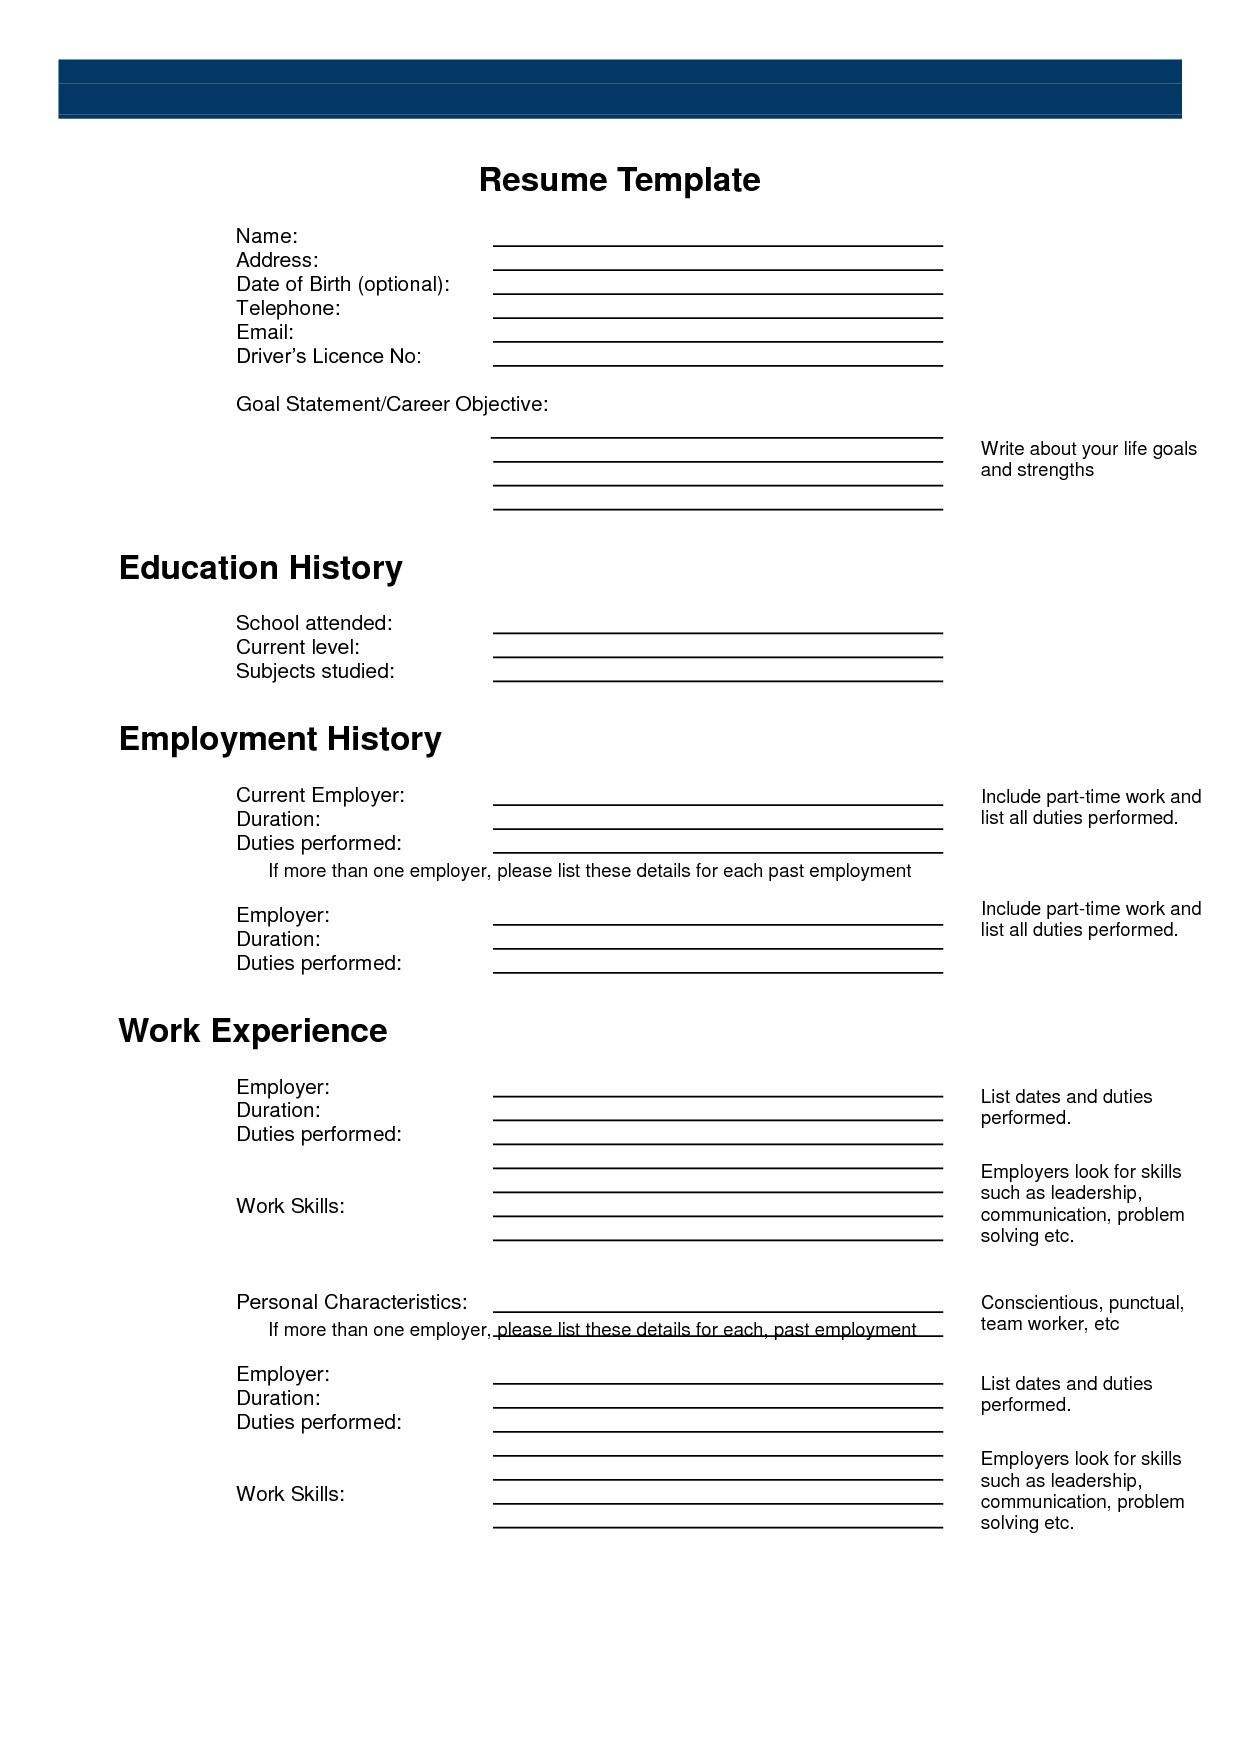 Printable Resume Form Surprising Inspiration Templates 2 Sample - Free Printable Fill In The Blank Resume Templates